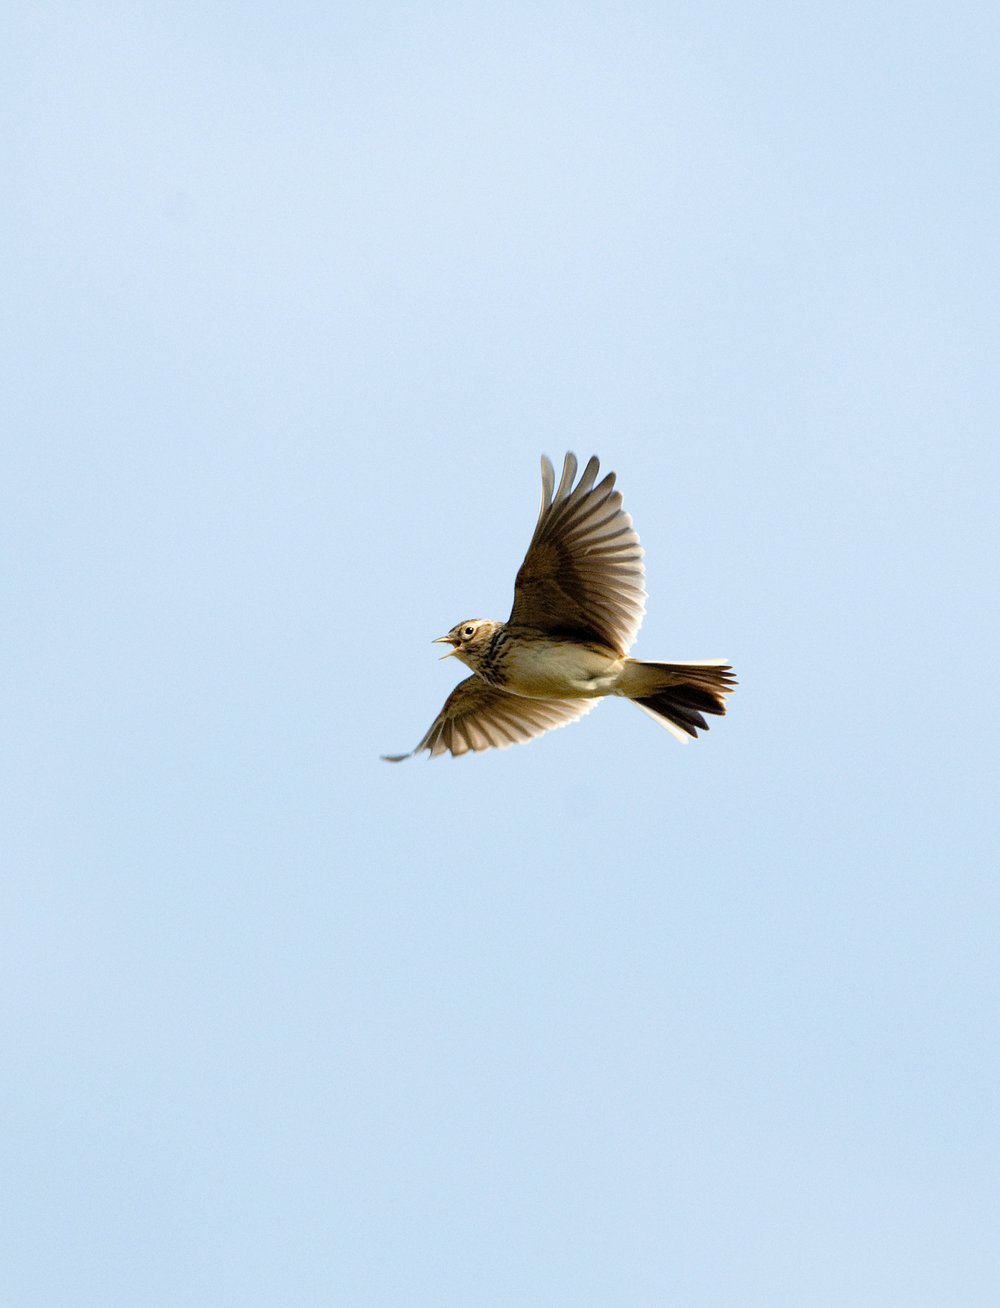 Sky Lark in hovering song flight